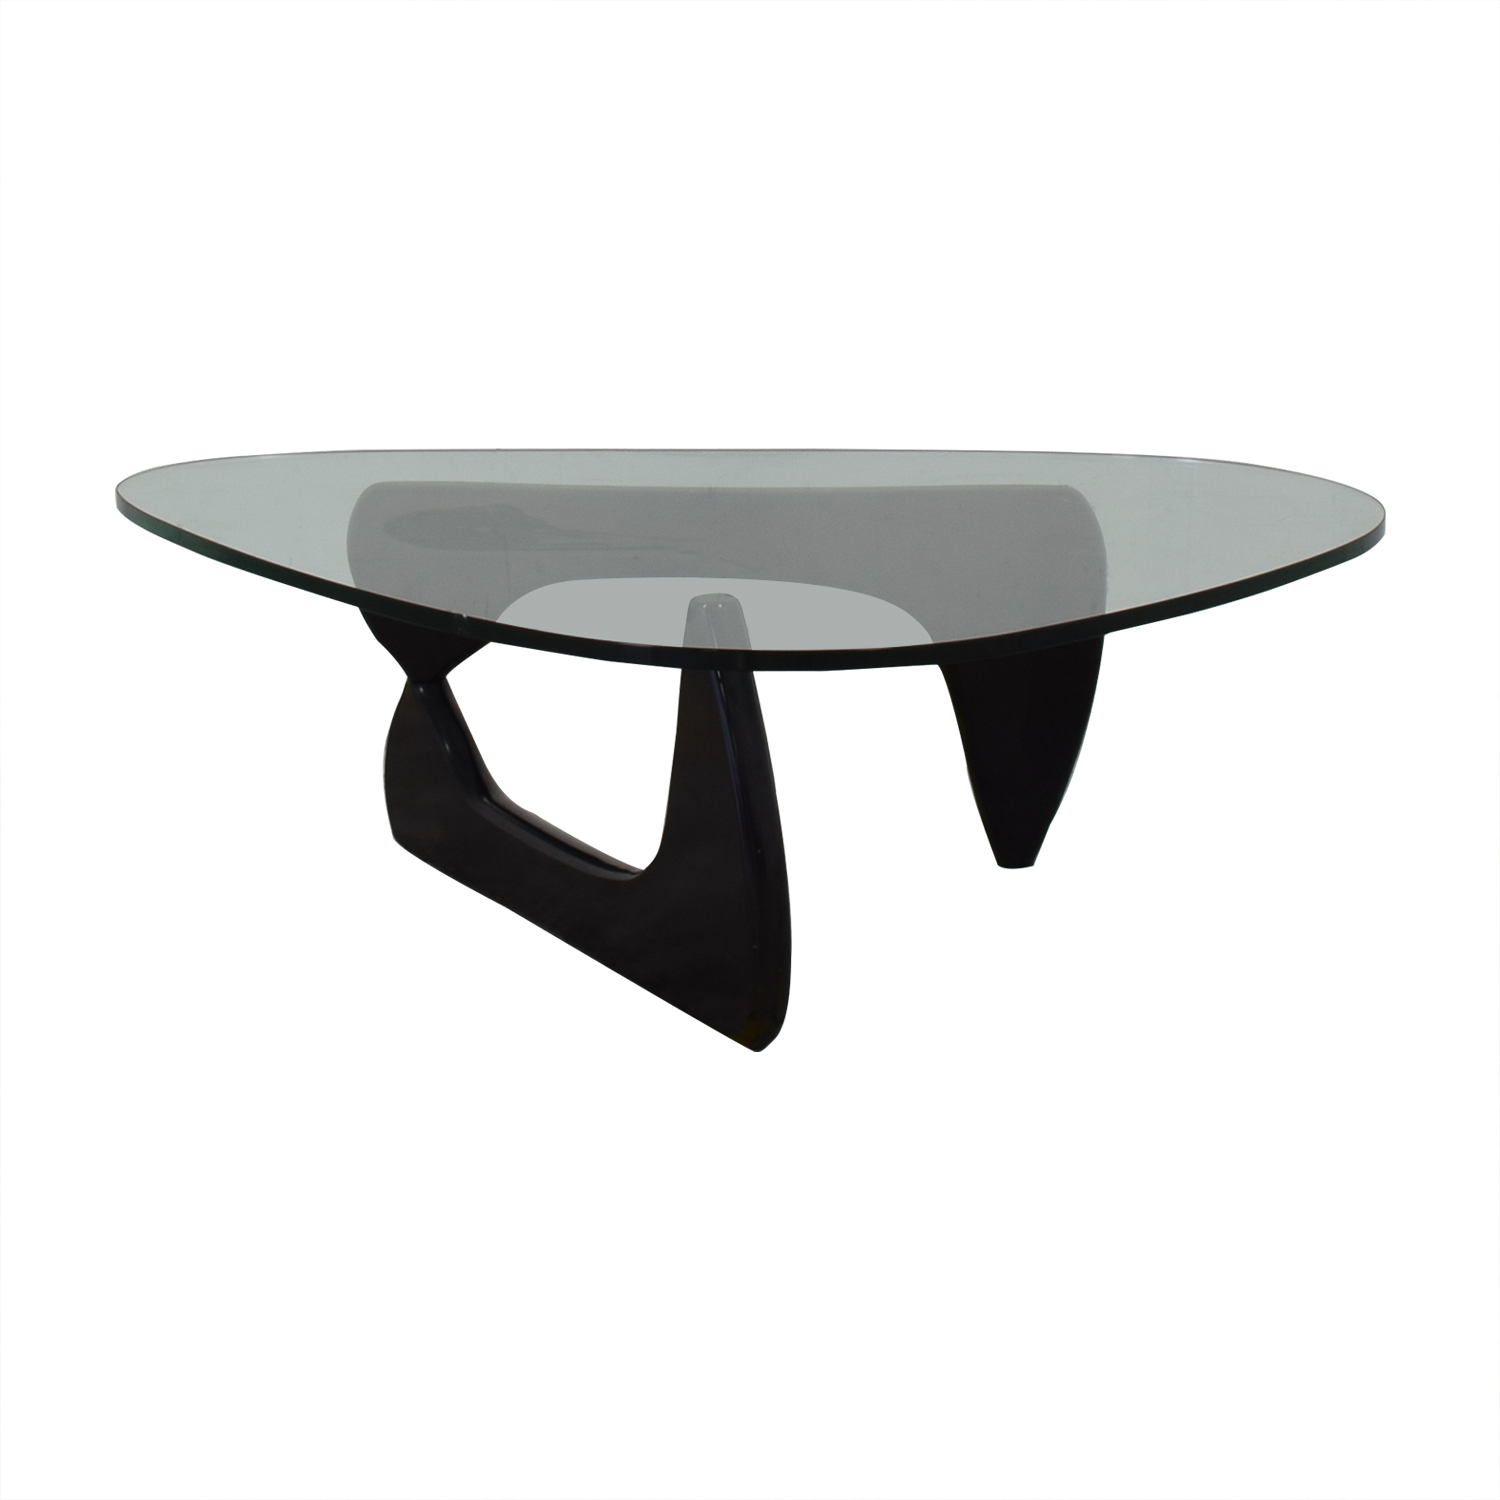 Herman Miller Herman Miller Noguchi Coffee Table black